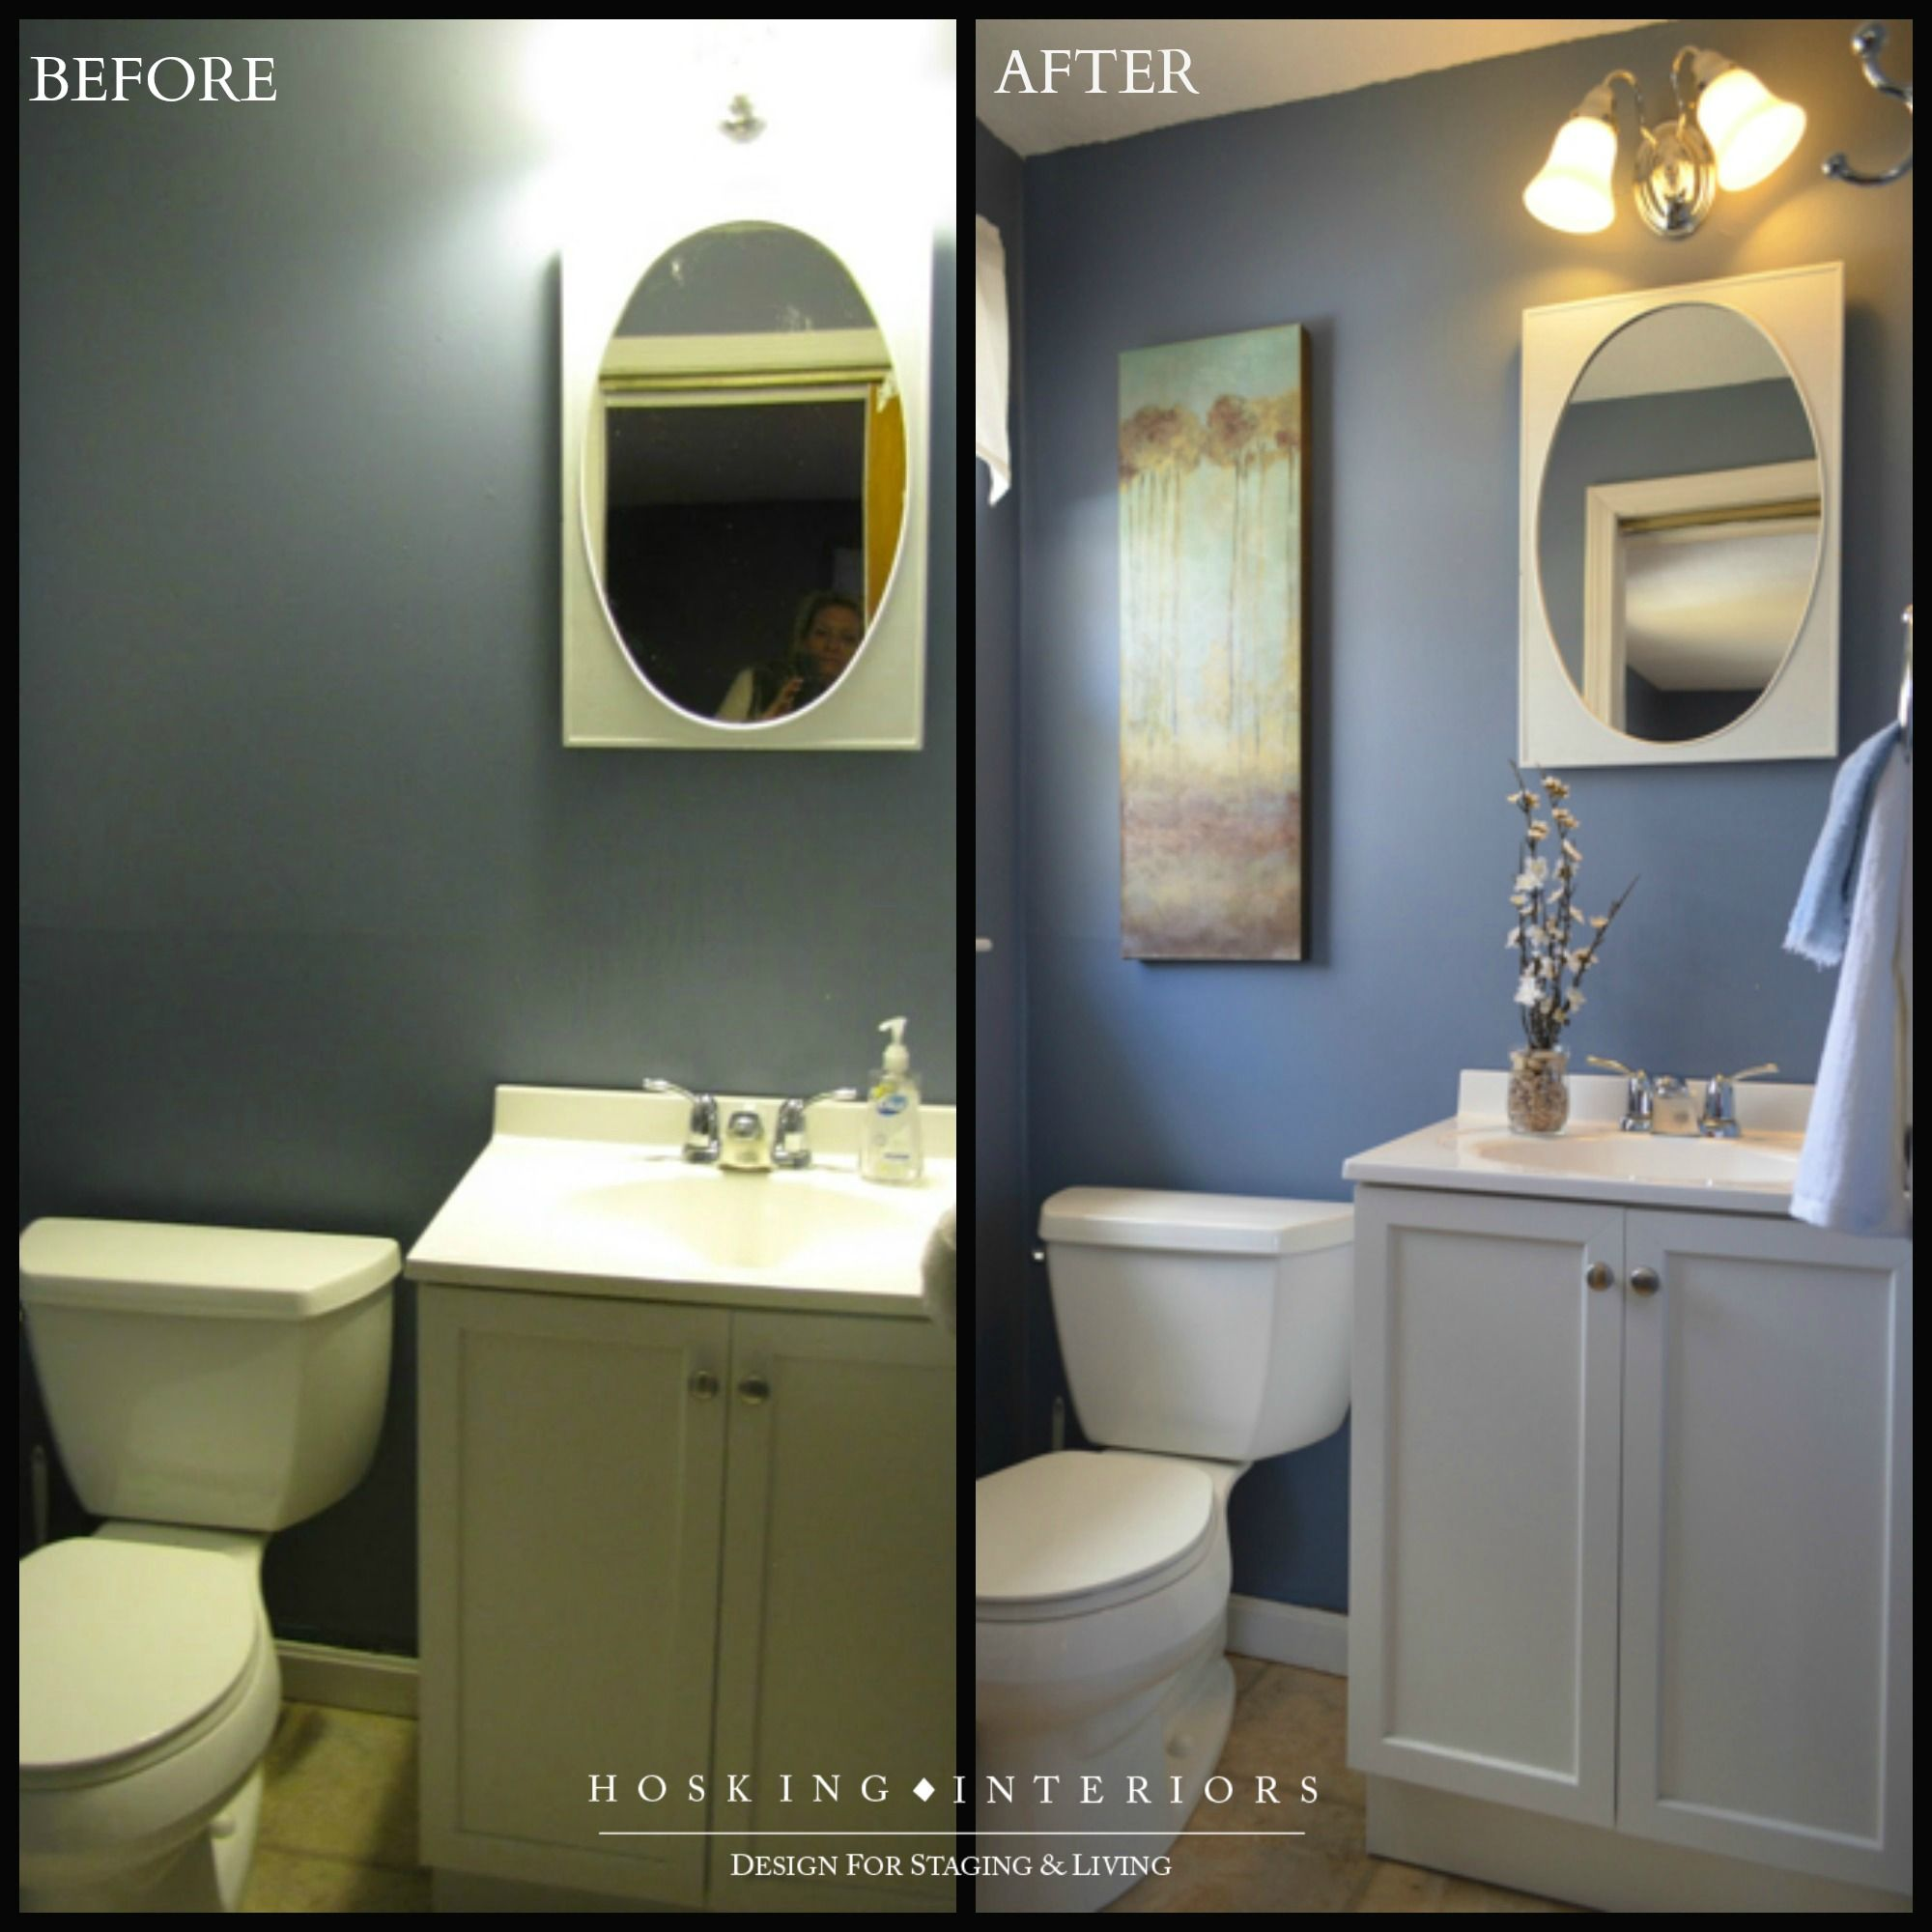 A Small Bathroom Before And After Staging.